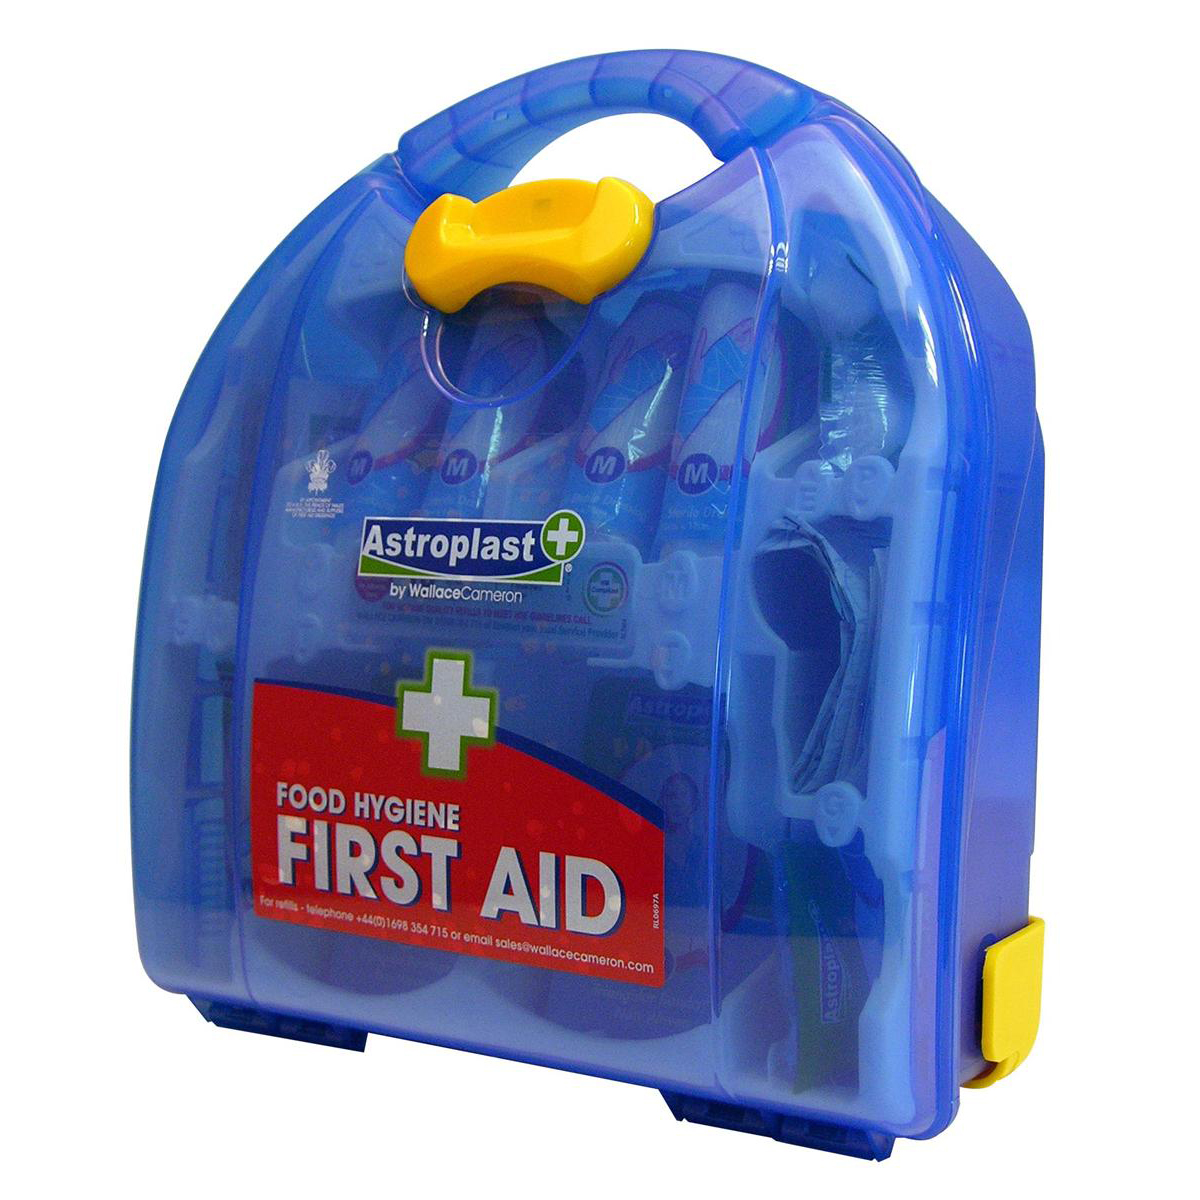 Wallace Cameron BS8599-1 Medium First Aid Kit Food Hygiene Ref 1004160 [Promo]